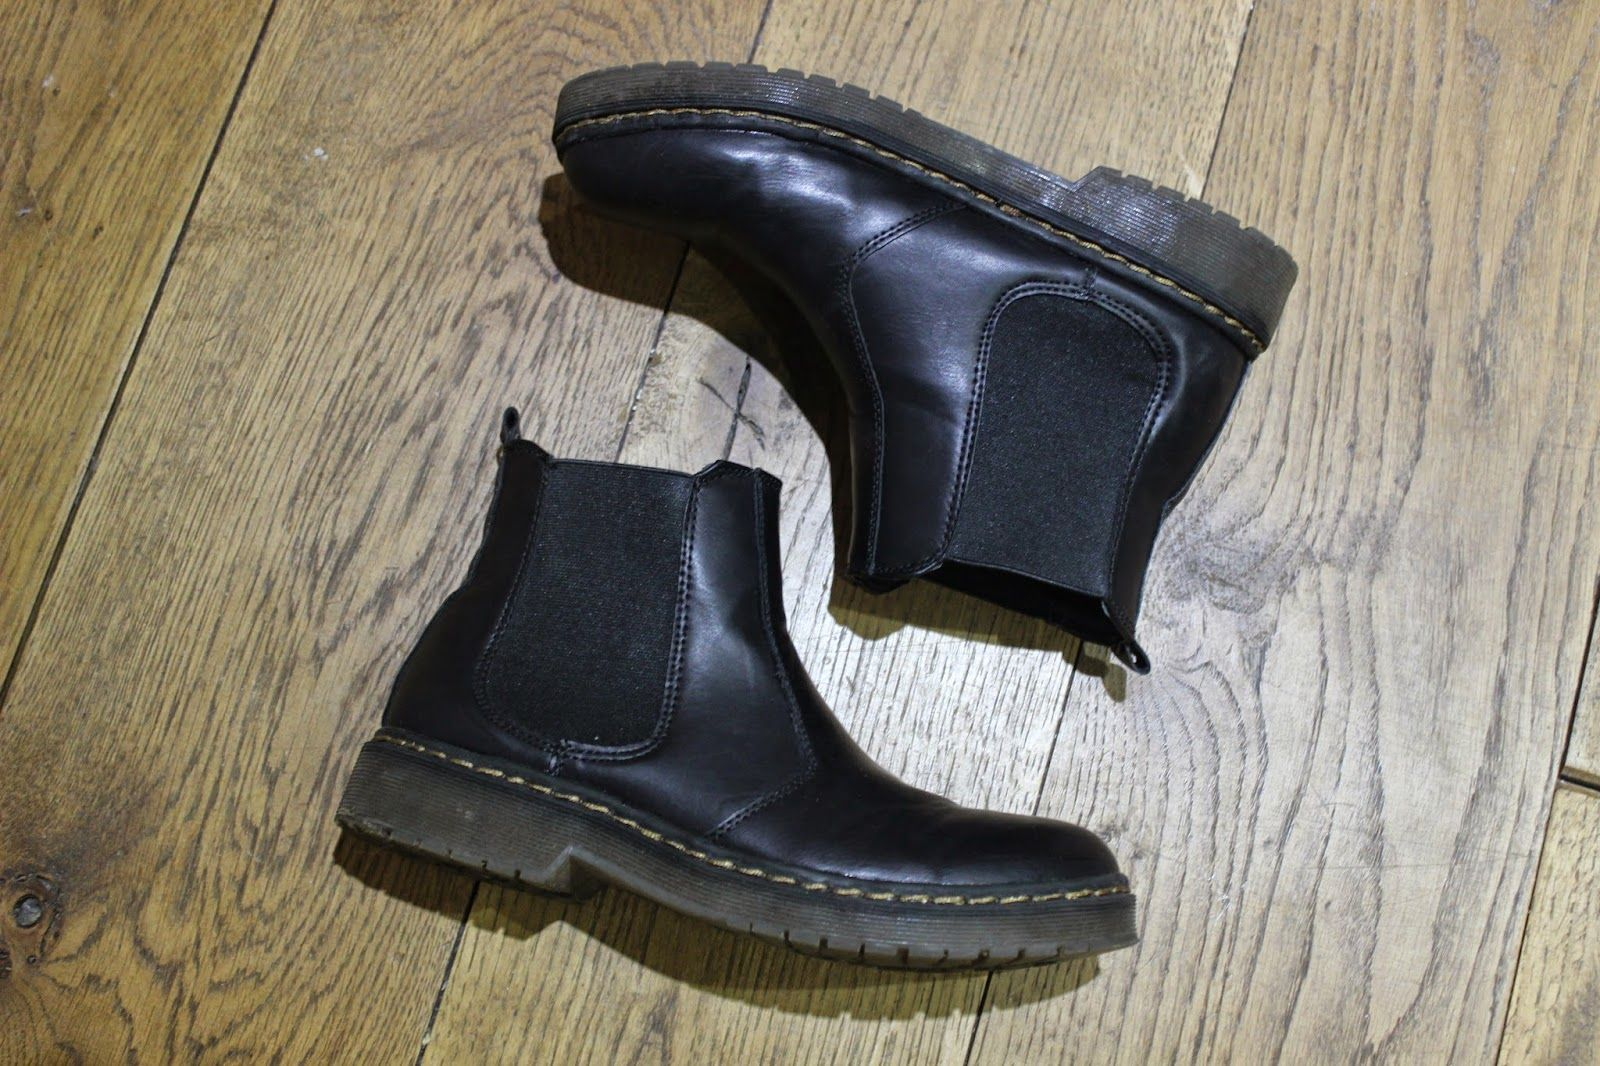 Missguided's Dr Marten's 2976 Chelsea Boots Dupes